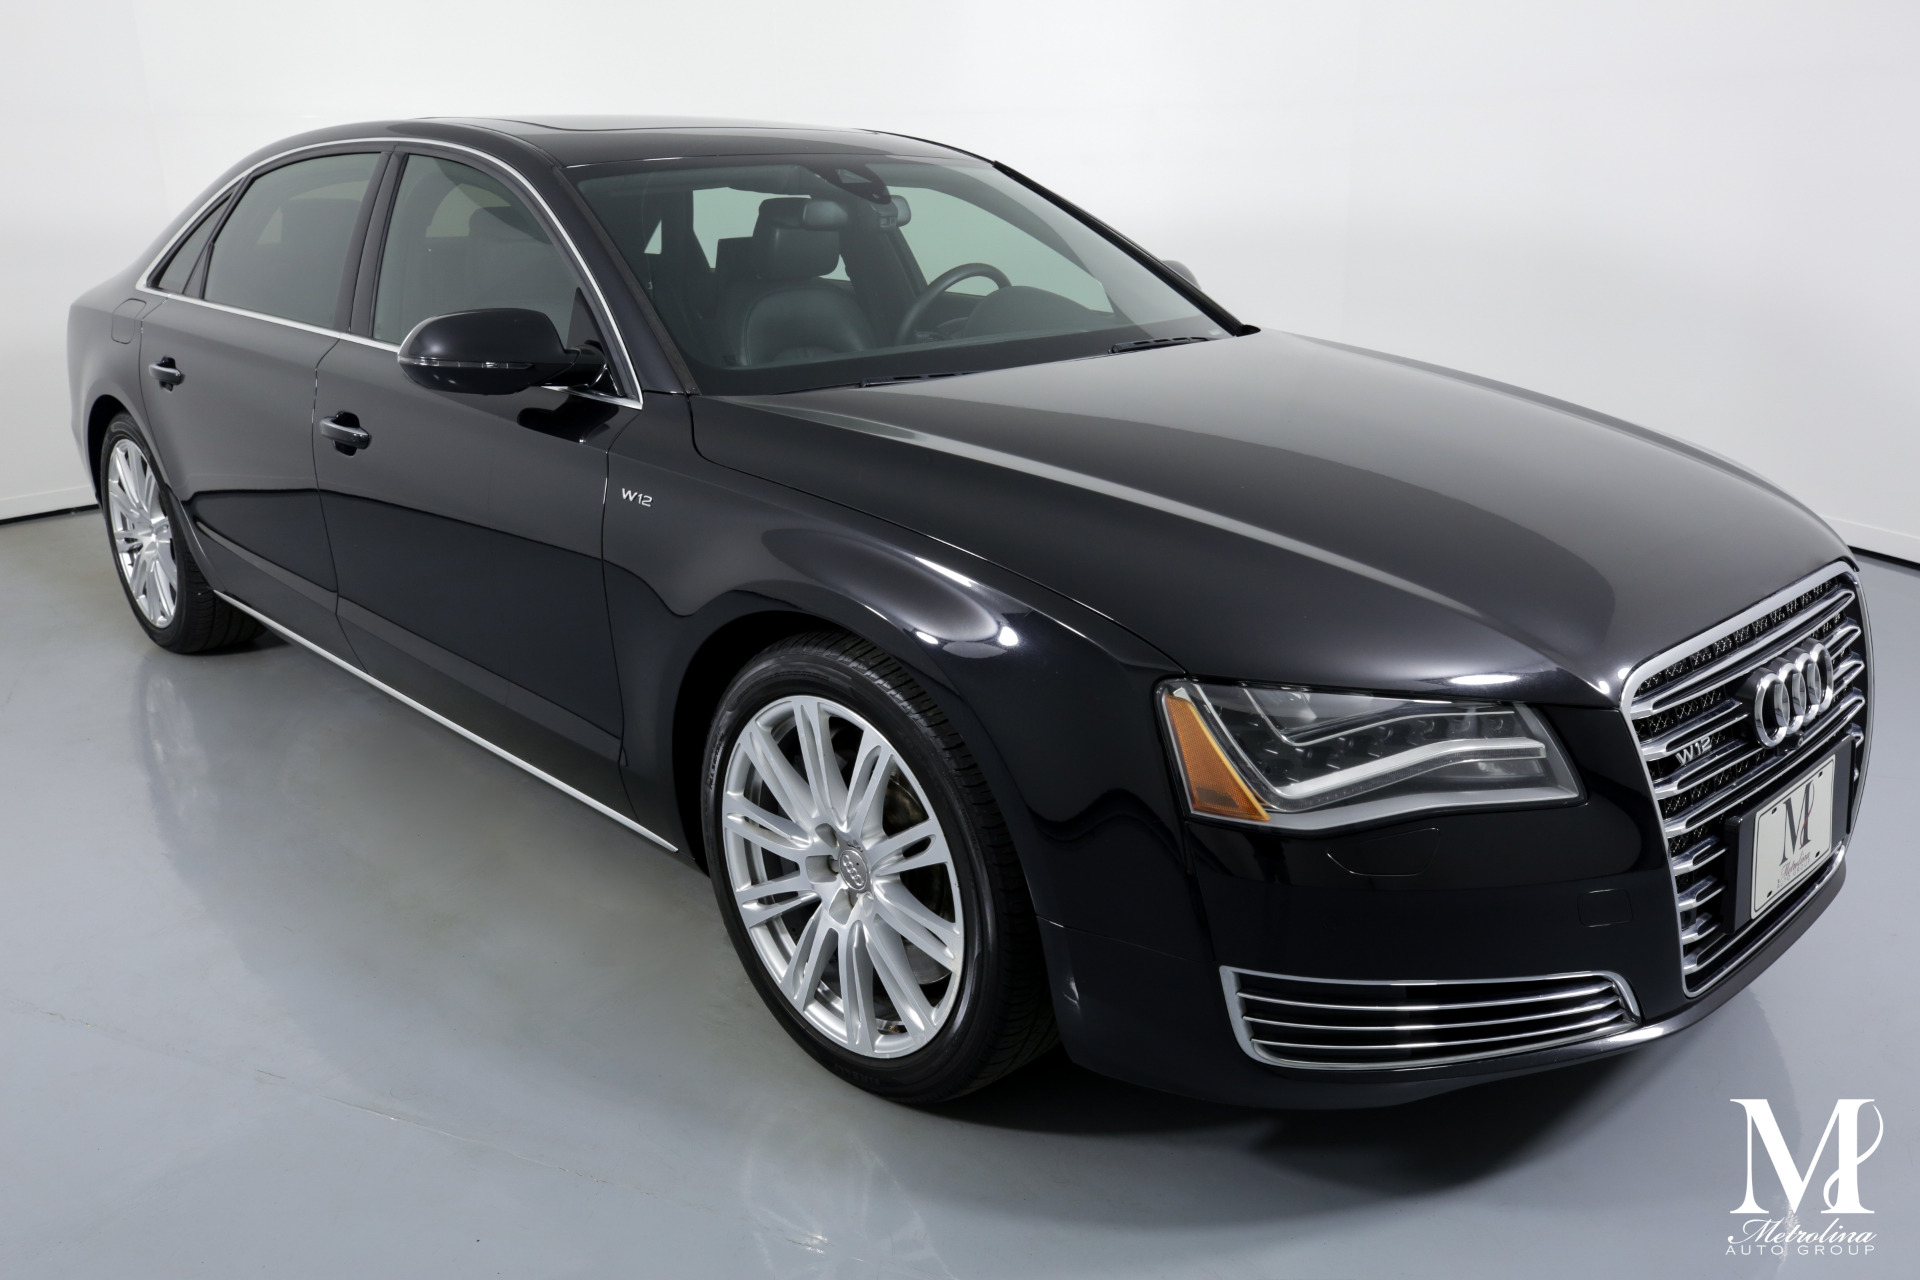 Used 2013 Audi A8 L W12 quattro for sale $37,596 at Metrolina Auto Group in Charlotte NC 28217 - 2